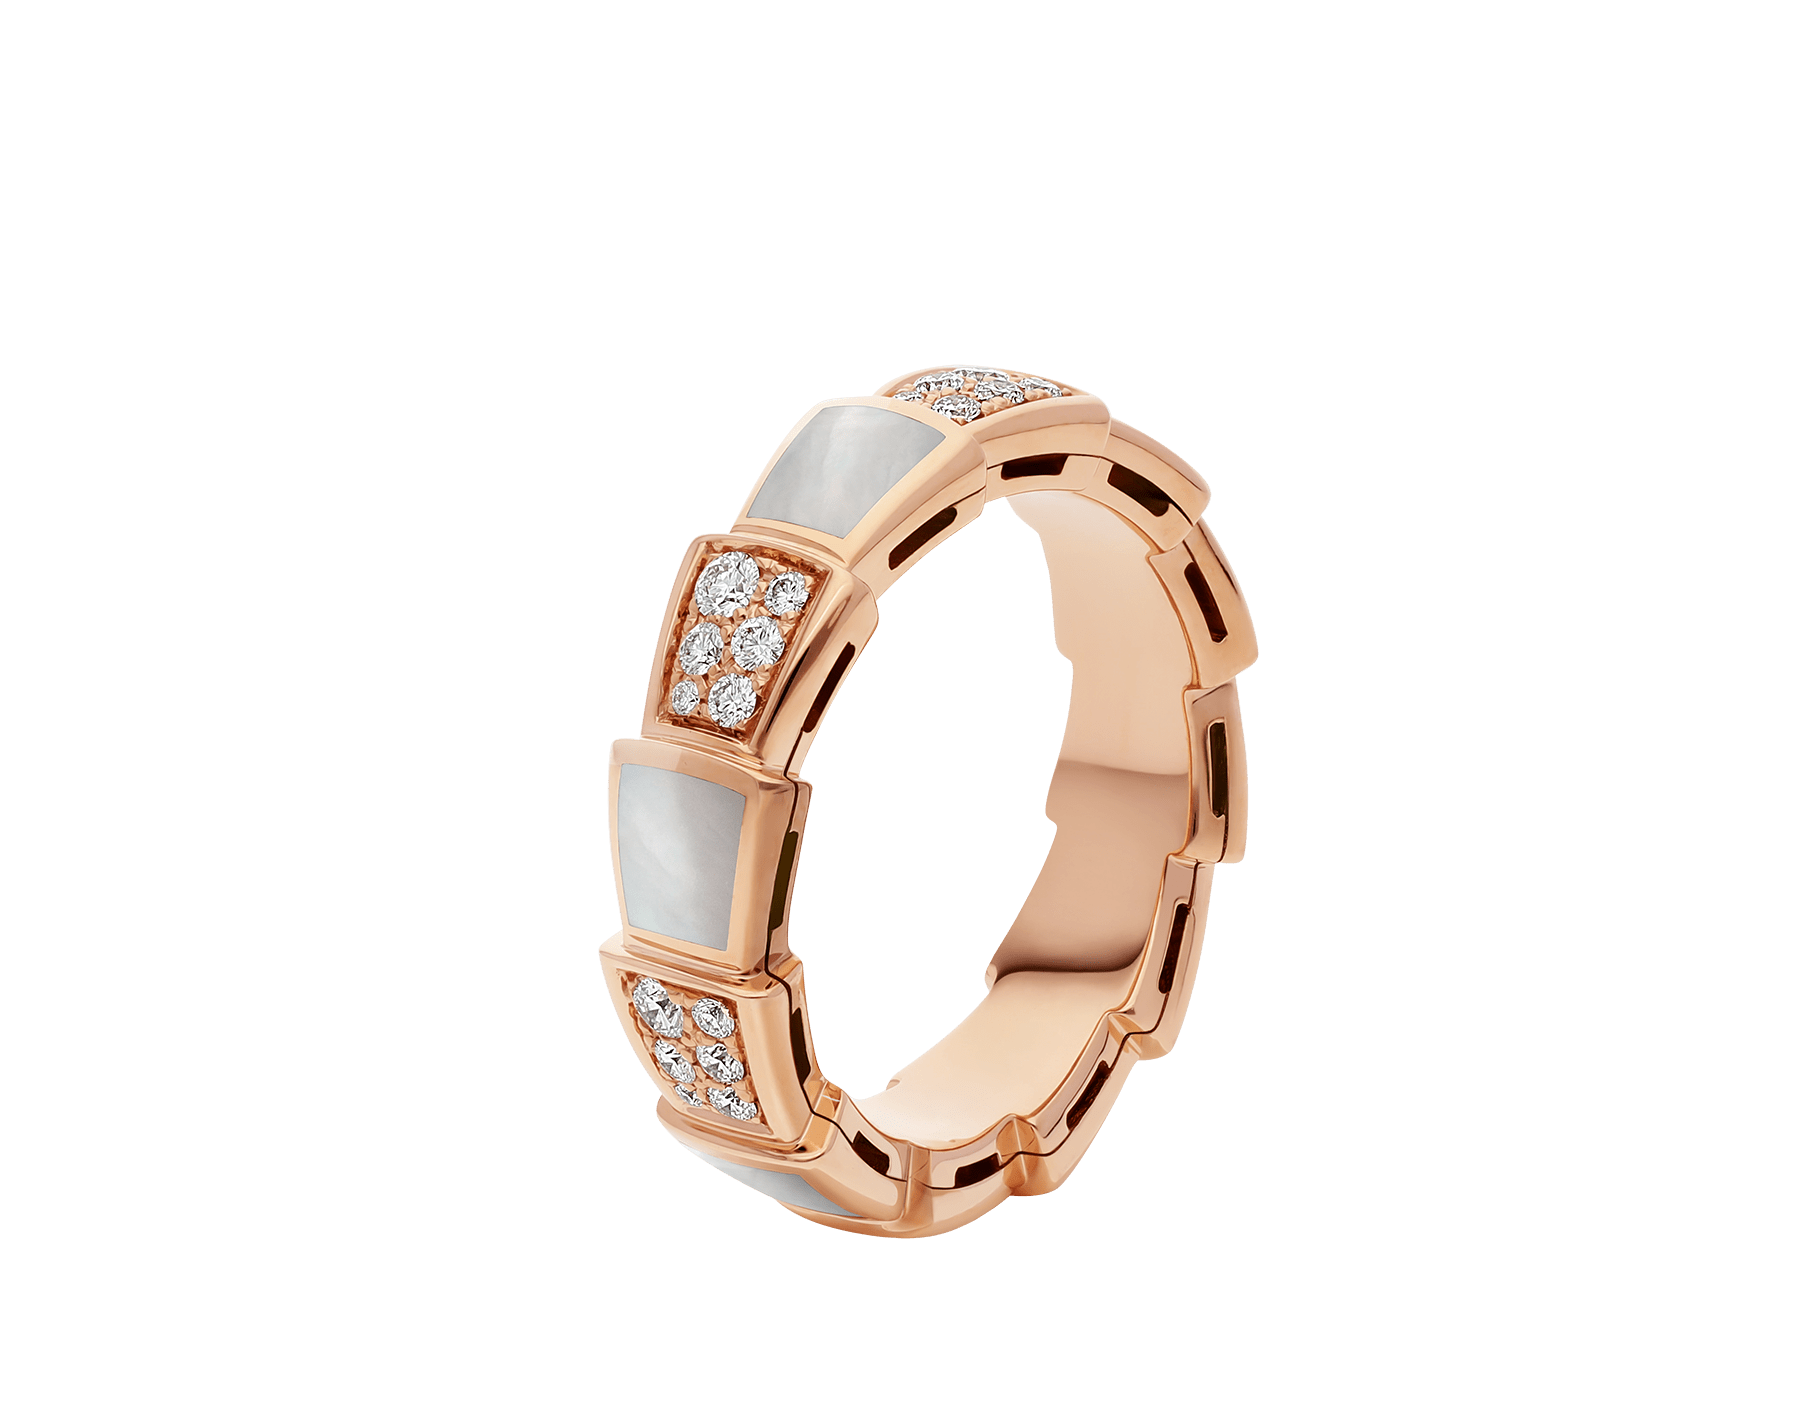 Serpenti Viper band ring in 18 kt rose gold, set with mother of pearl elements and pavé diamonds. AN858043 image 1